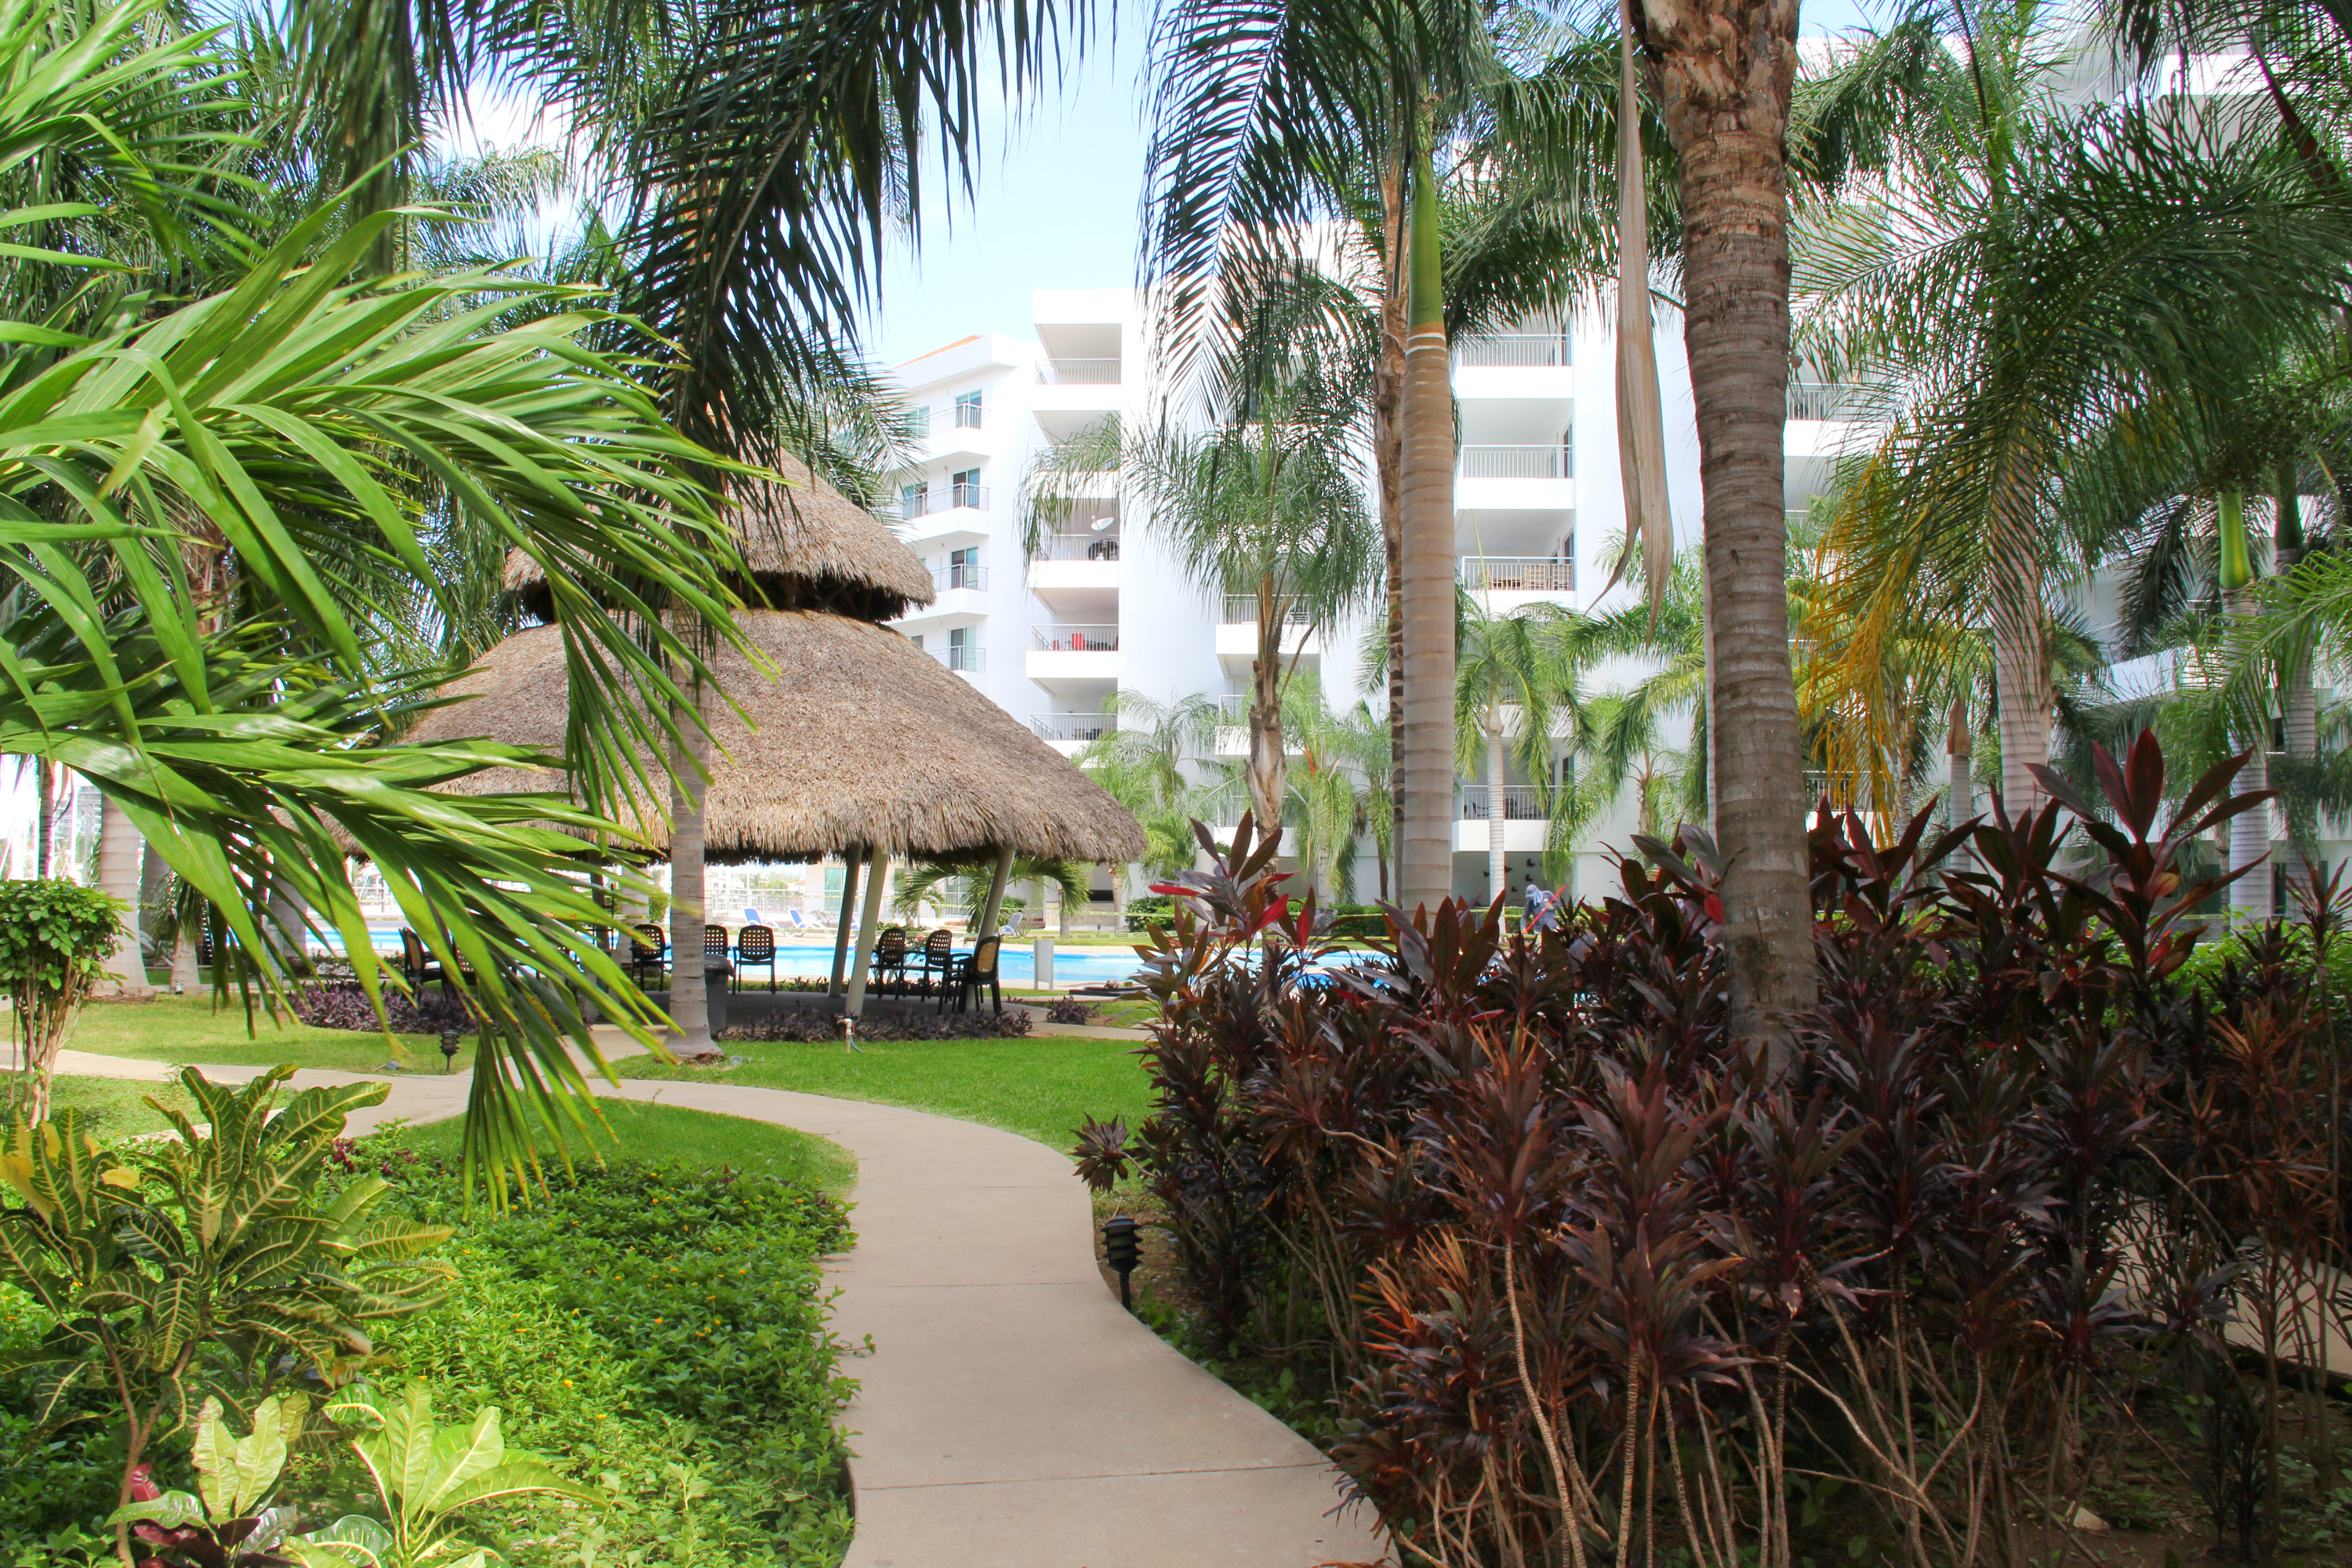 Path to pool and palapa.